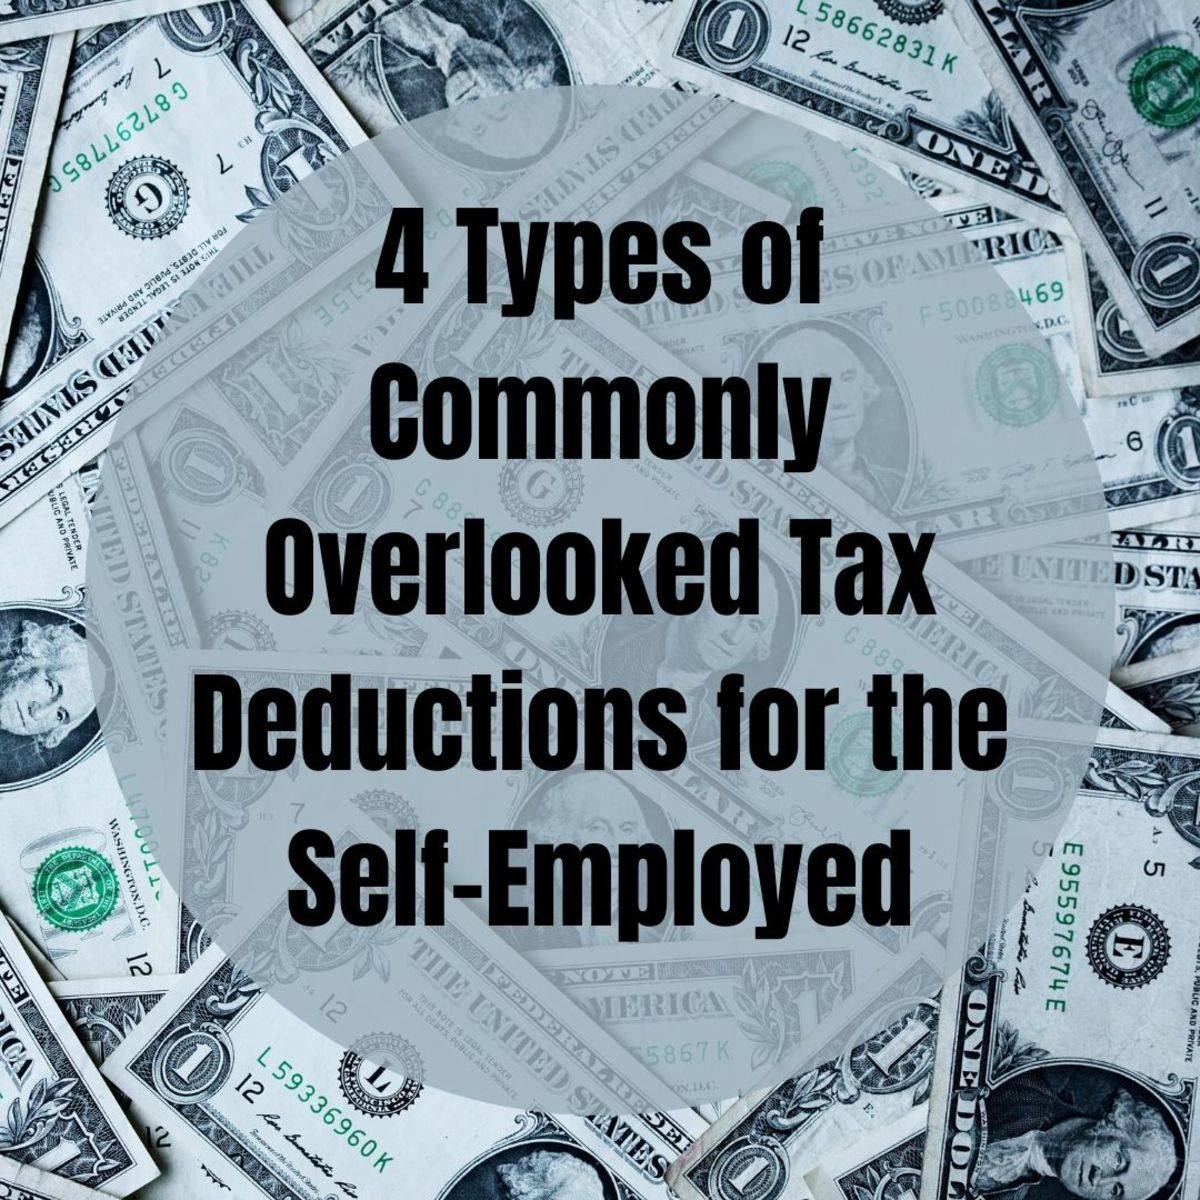 Are you self-employed and wondering what sort of tax deductions you might be eligible to claim? This article will help you find out which of your business expenses are tax-deductible.